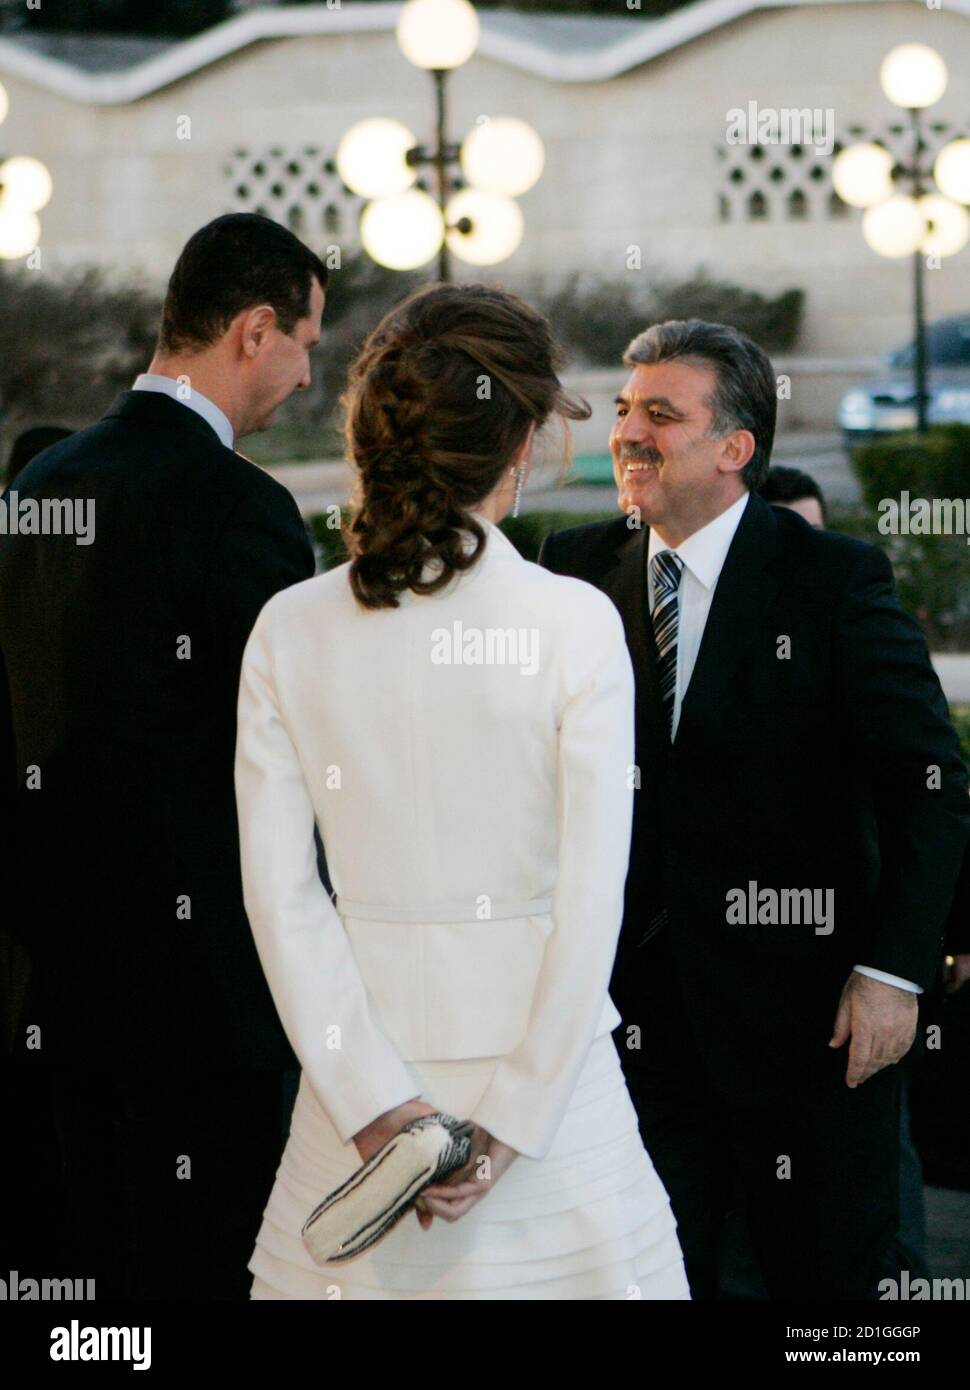 Syria S President Bashar Al Assad And His Wife Asma Welcomes His Turkish Counterpart Abdullah Gul R During The Official Opening Of Damascus The Arabic Capital Of Culture 2008 In Damascus January 19 2008